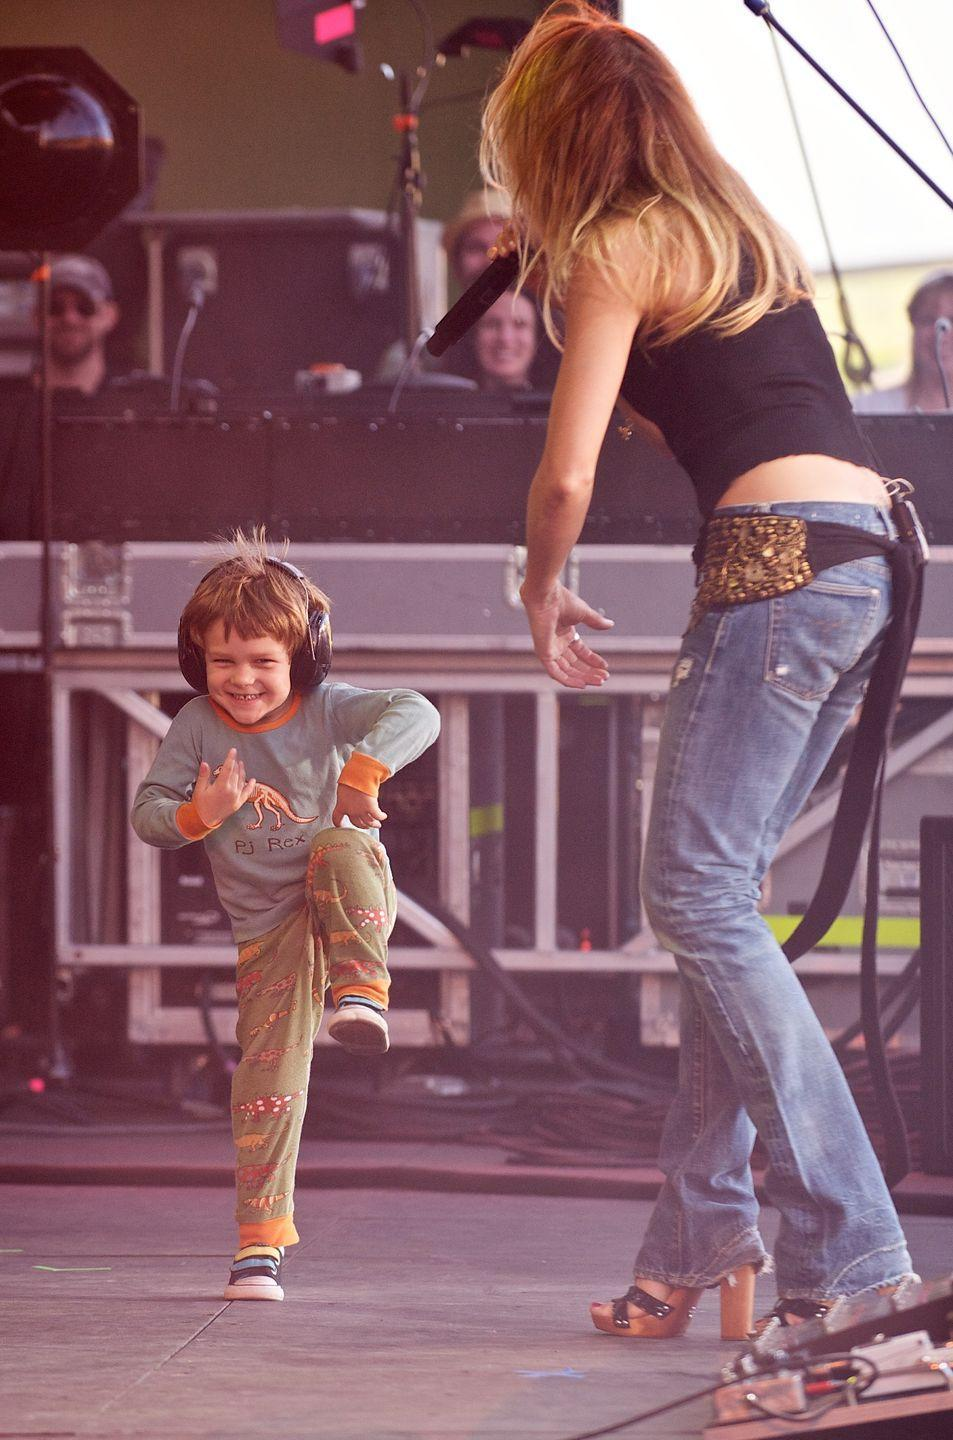 <p>Wyatt Crow accompanied his mother, Sheryl Crow, to the Lilith Fair in 2010. The three-year-old busted out some dance moves onstage, while his mother was performing — much to the audience's delight, we'd imagine. </p>